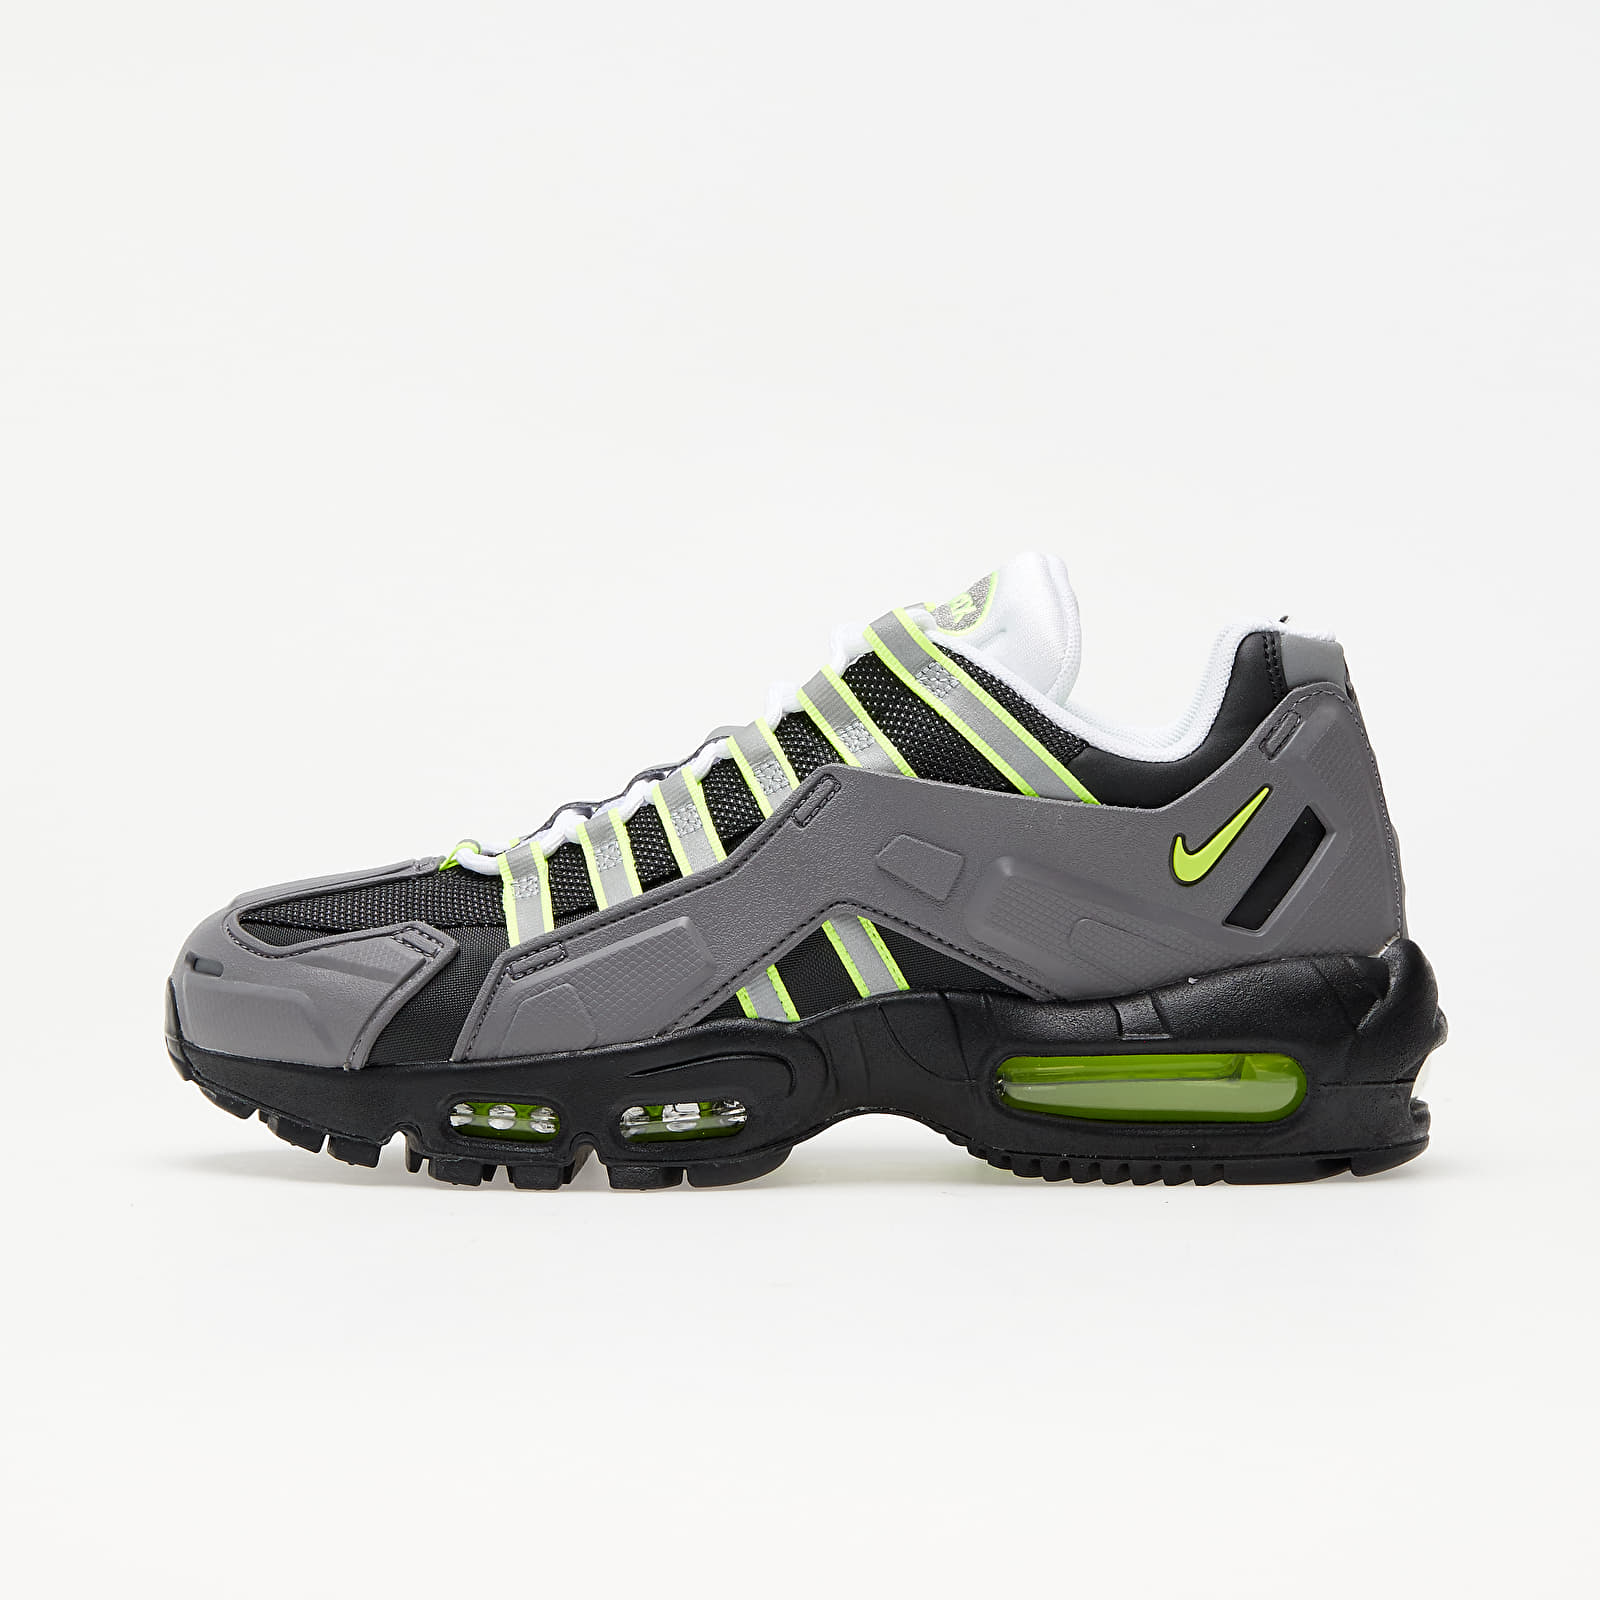 Nike Air Max 95 NDSTRKT Black/ Neon Yellow-Medium Grey EUR 45